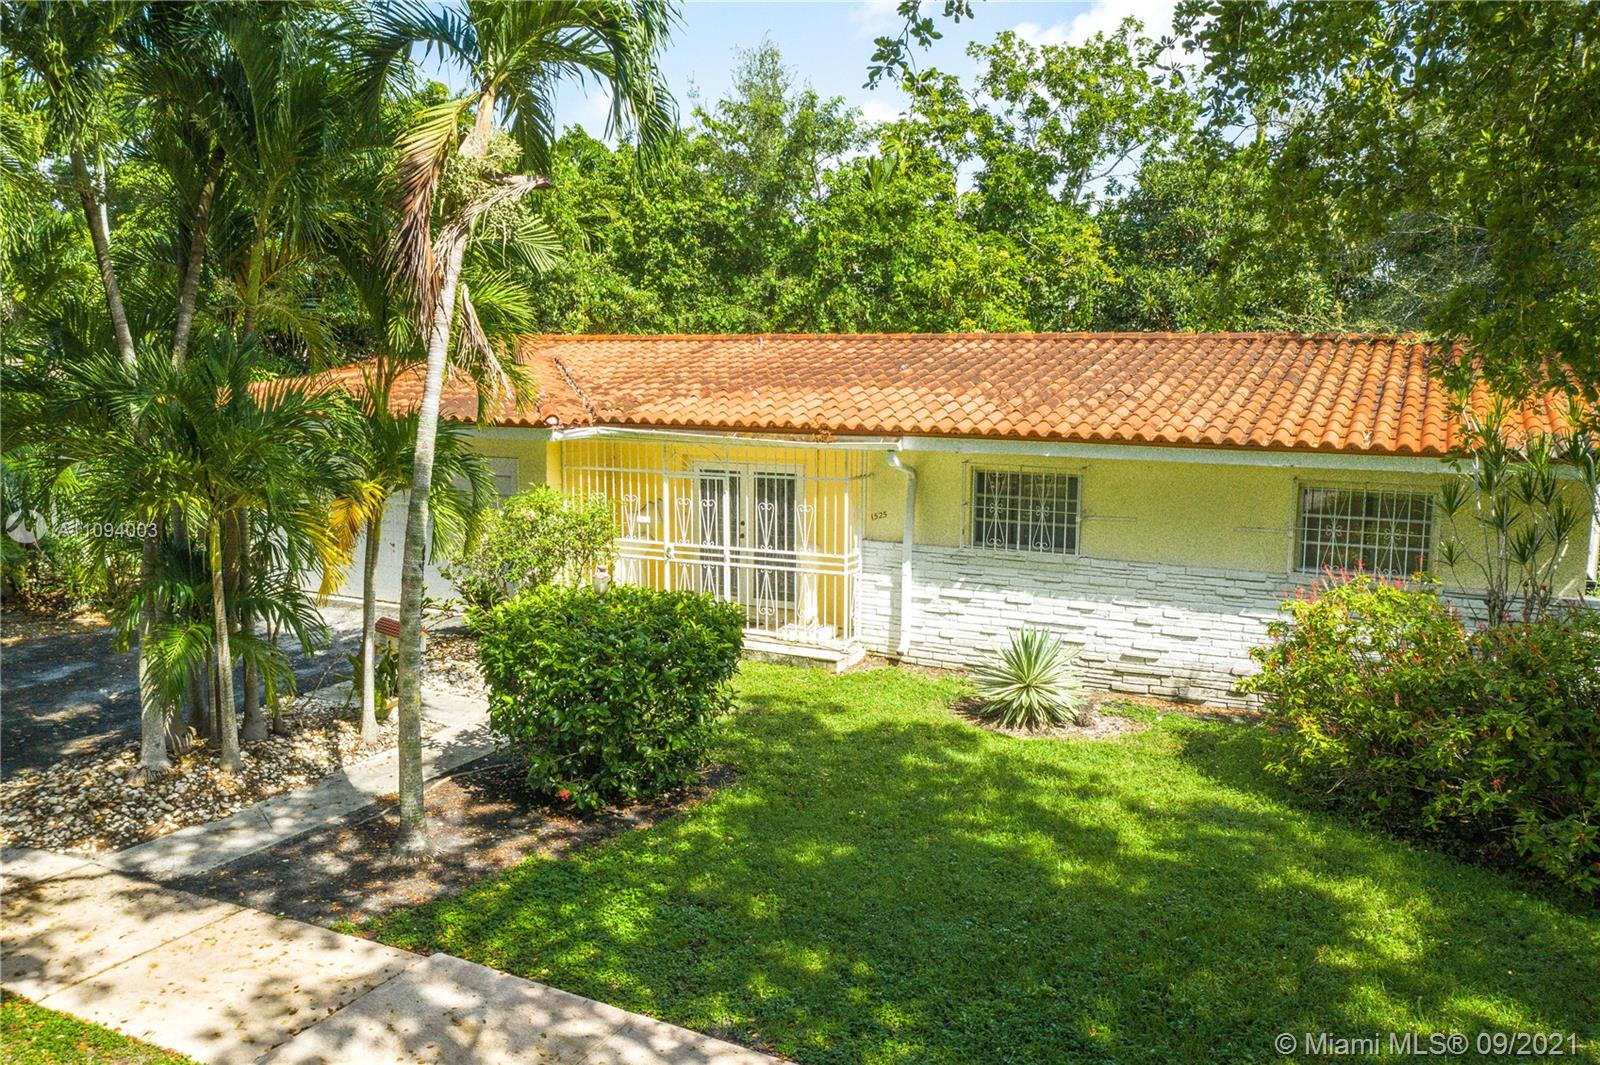 """Excellent opportunity to live in dynamic Coral Gables, """"The City Beautiful."""" A spacious family home, located near the University of Miami, with an exceptional floor plan. This 1 story, 3 Bedroom 2 Bath home has a total area over 2,984 Sq. Ft., with room for spacious kitchen, living room, Xlarge primary bedroom, and large two-car garage.  Priced to allow for TLC and to create a home to your tastes. Good for a family or investor…do not wait, it will not last.  Architect renderings are also included in the sale of the home.. Call listing agent for access."""